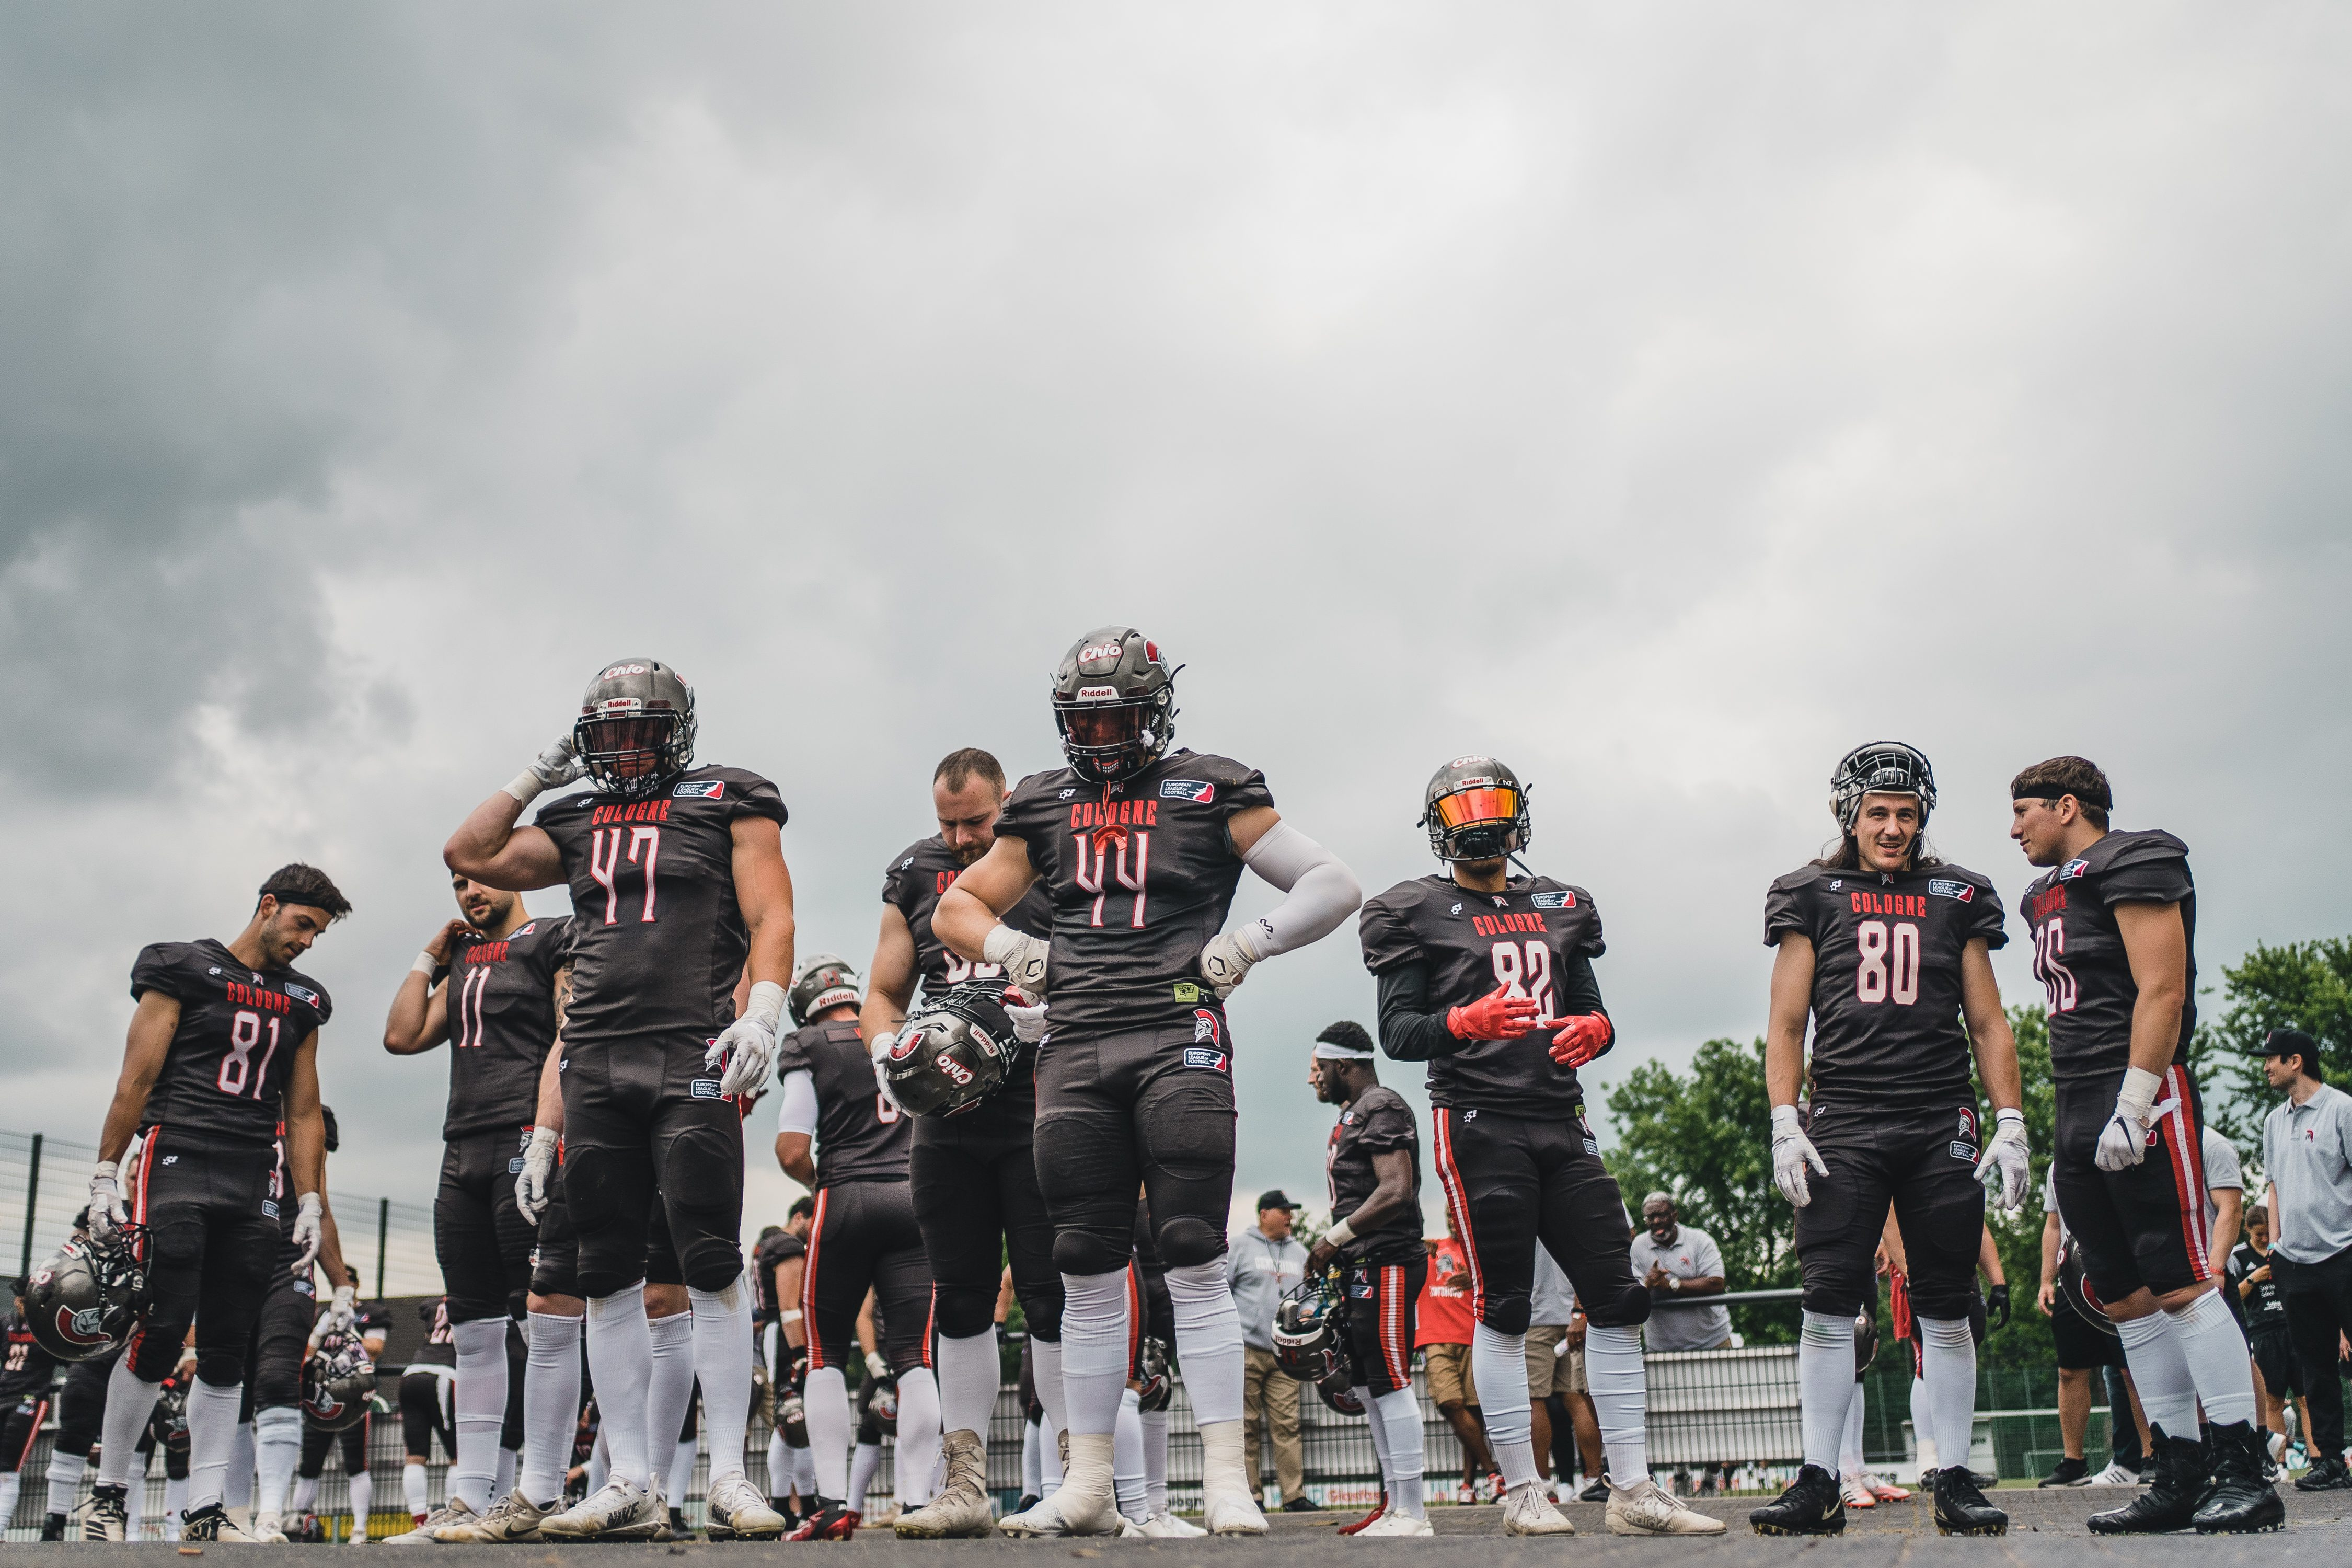 Road to Championship: A week with the Cologne Centurions